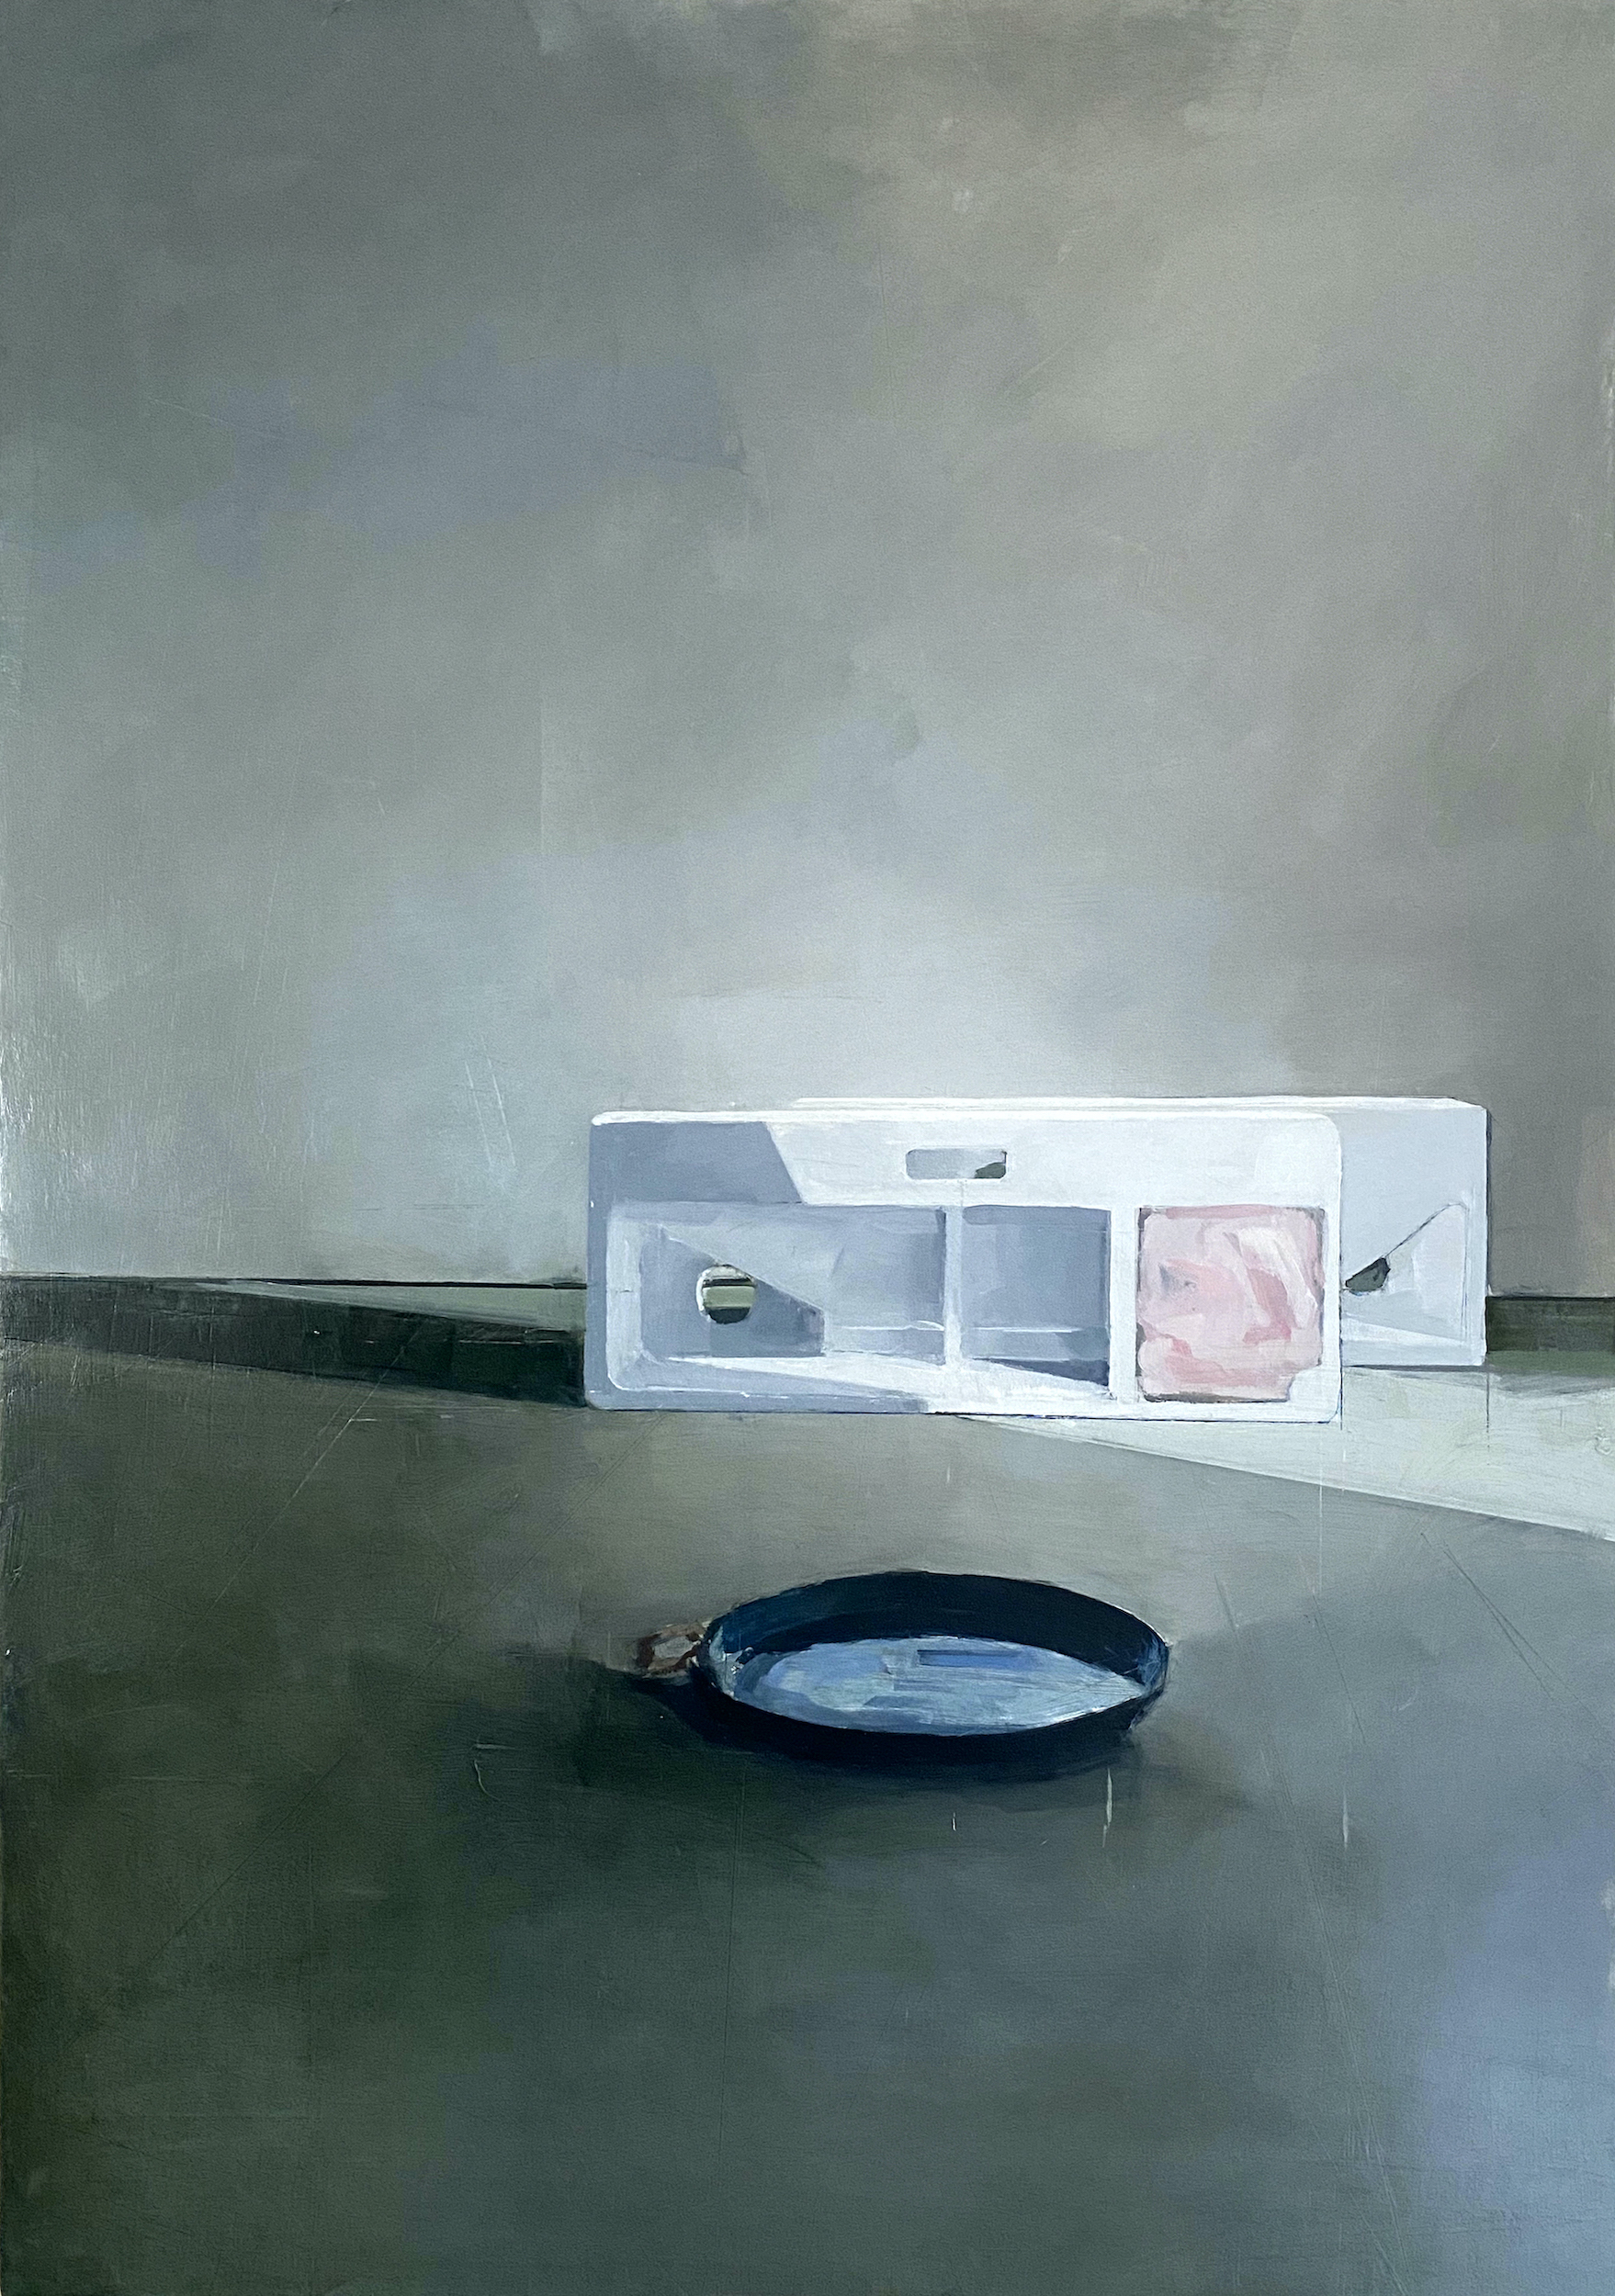 Jenny Brillhart, Serving Tray and Sink Form, 2021